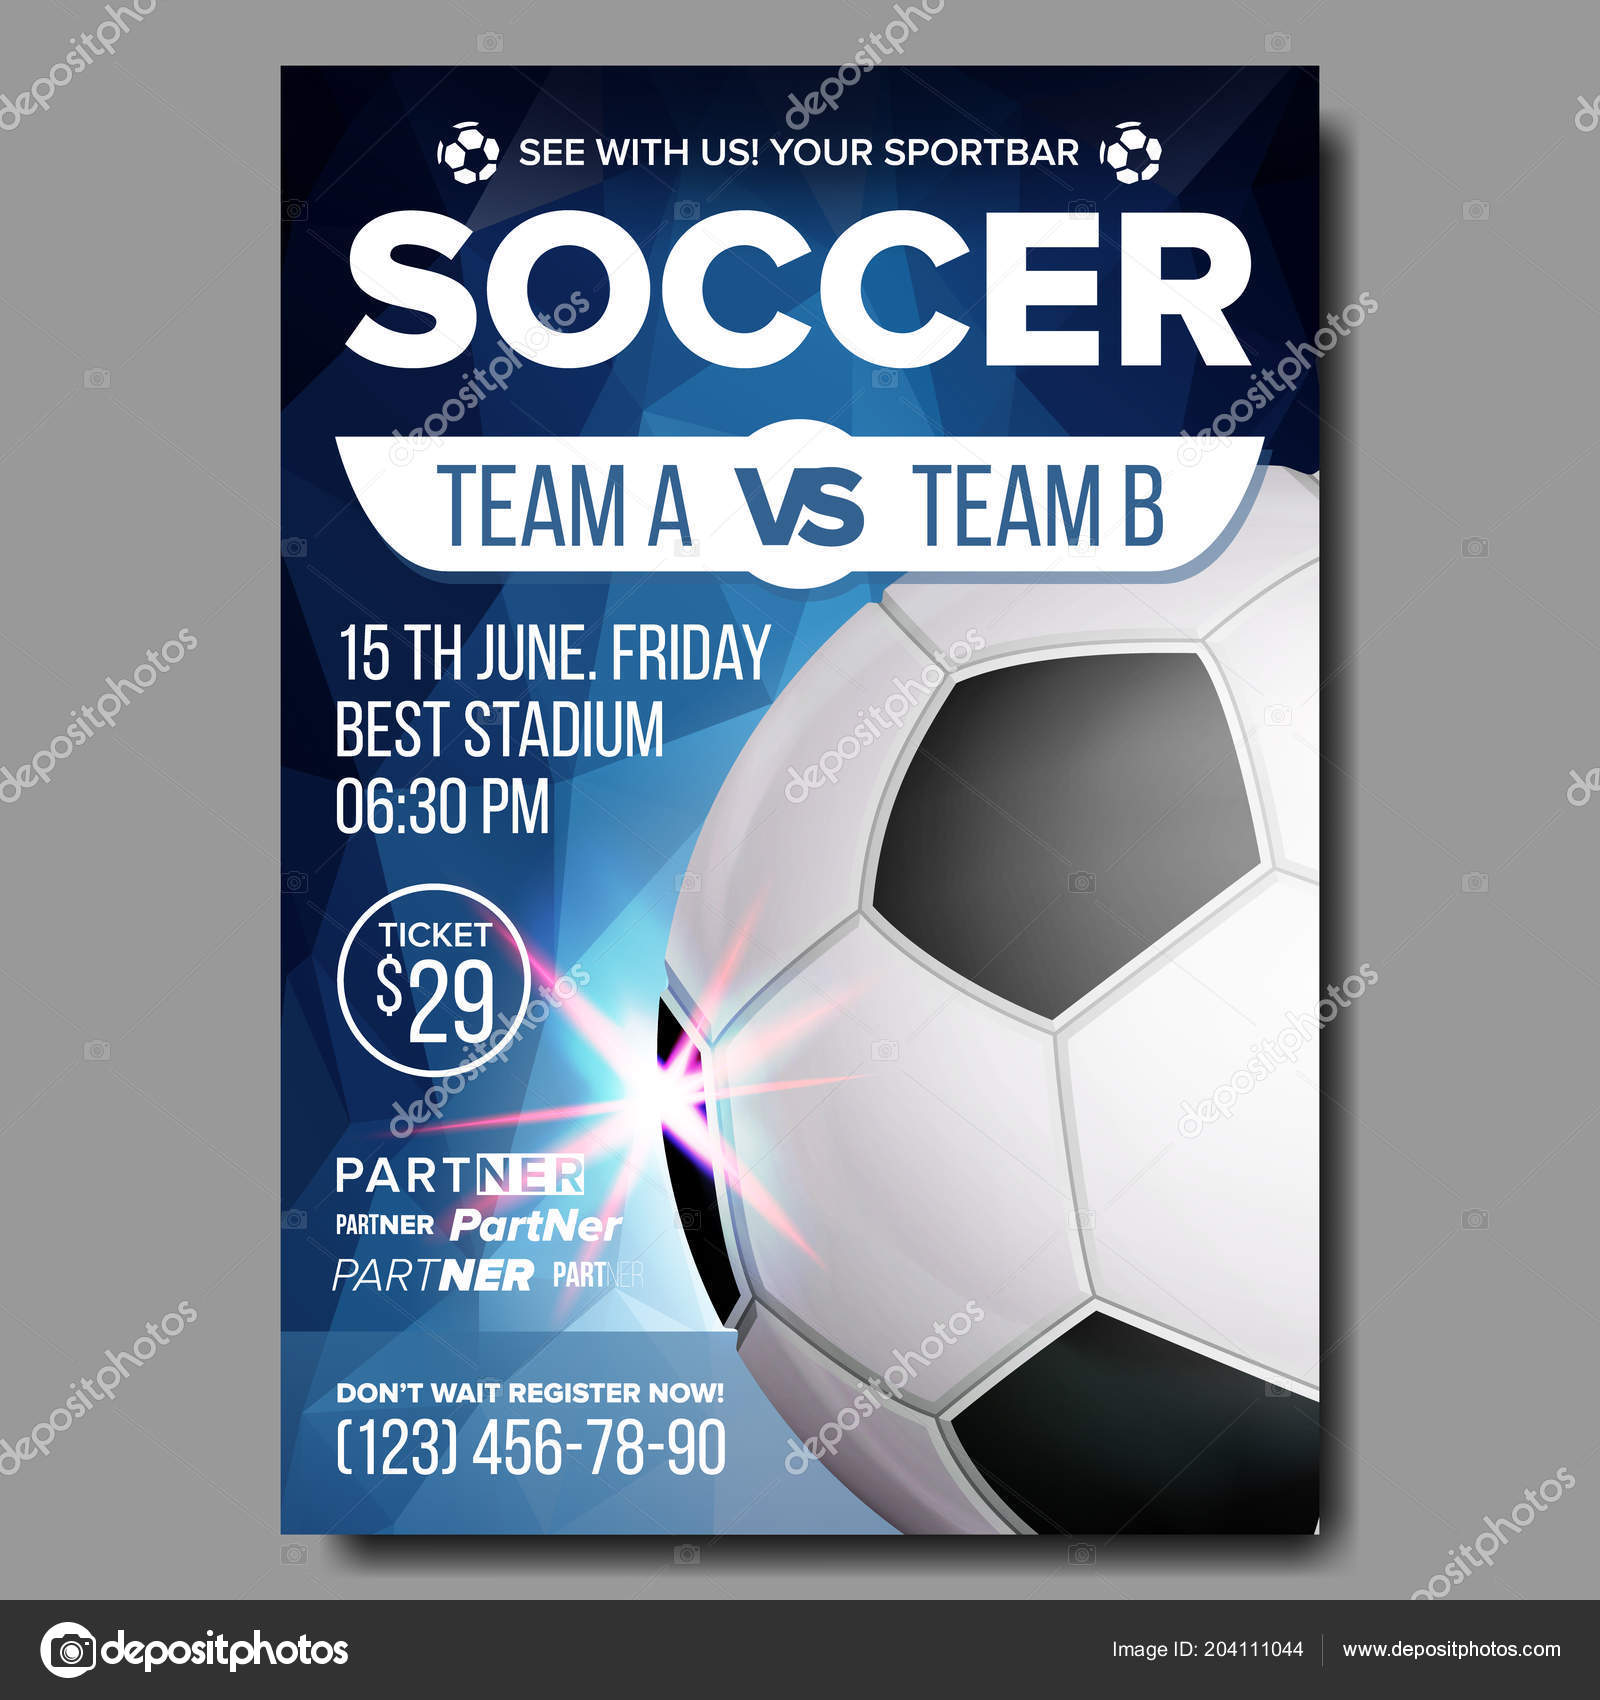 Soccer poster vector sports bar game event announcement football sport event announcement football ball competition announcement game league design championship layout illustration vetor de pikepicture stopboris Choice Image